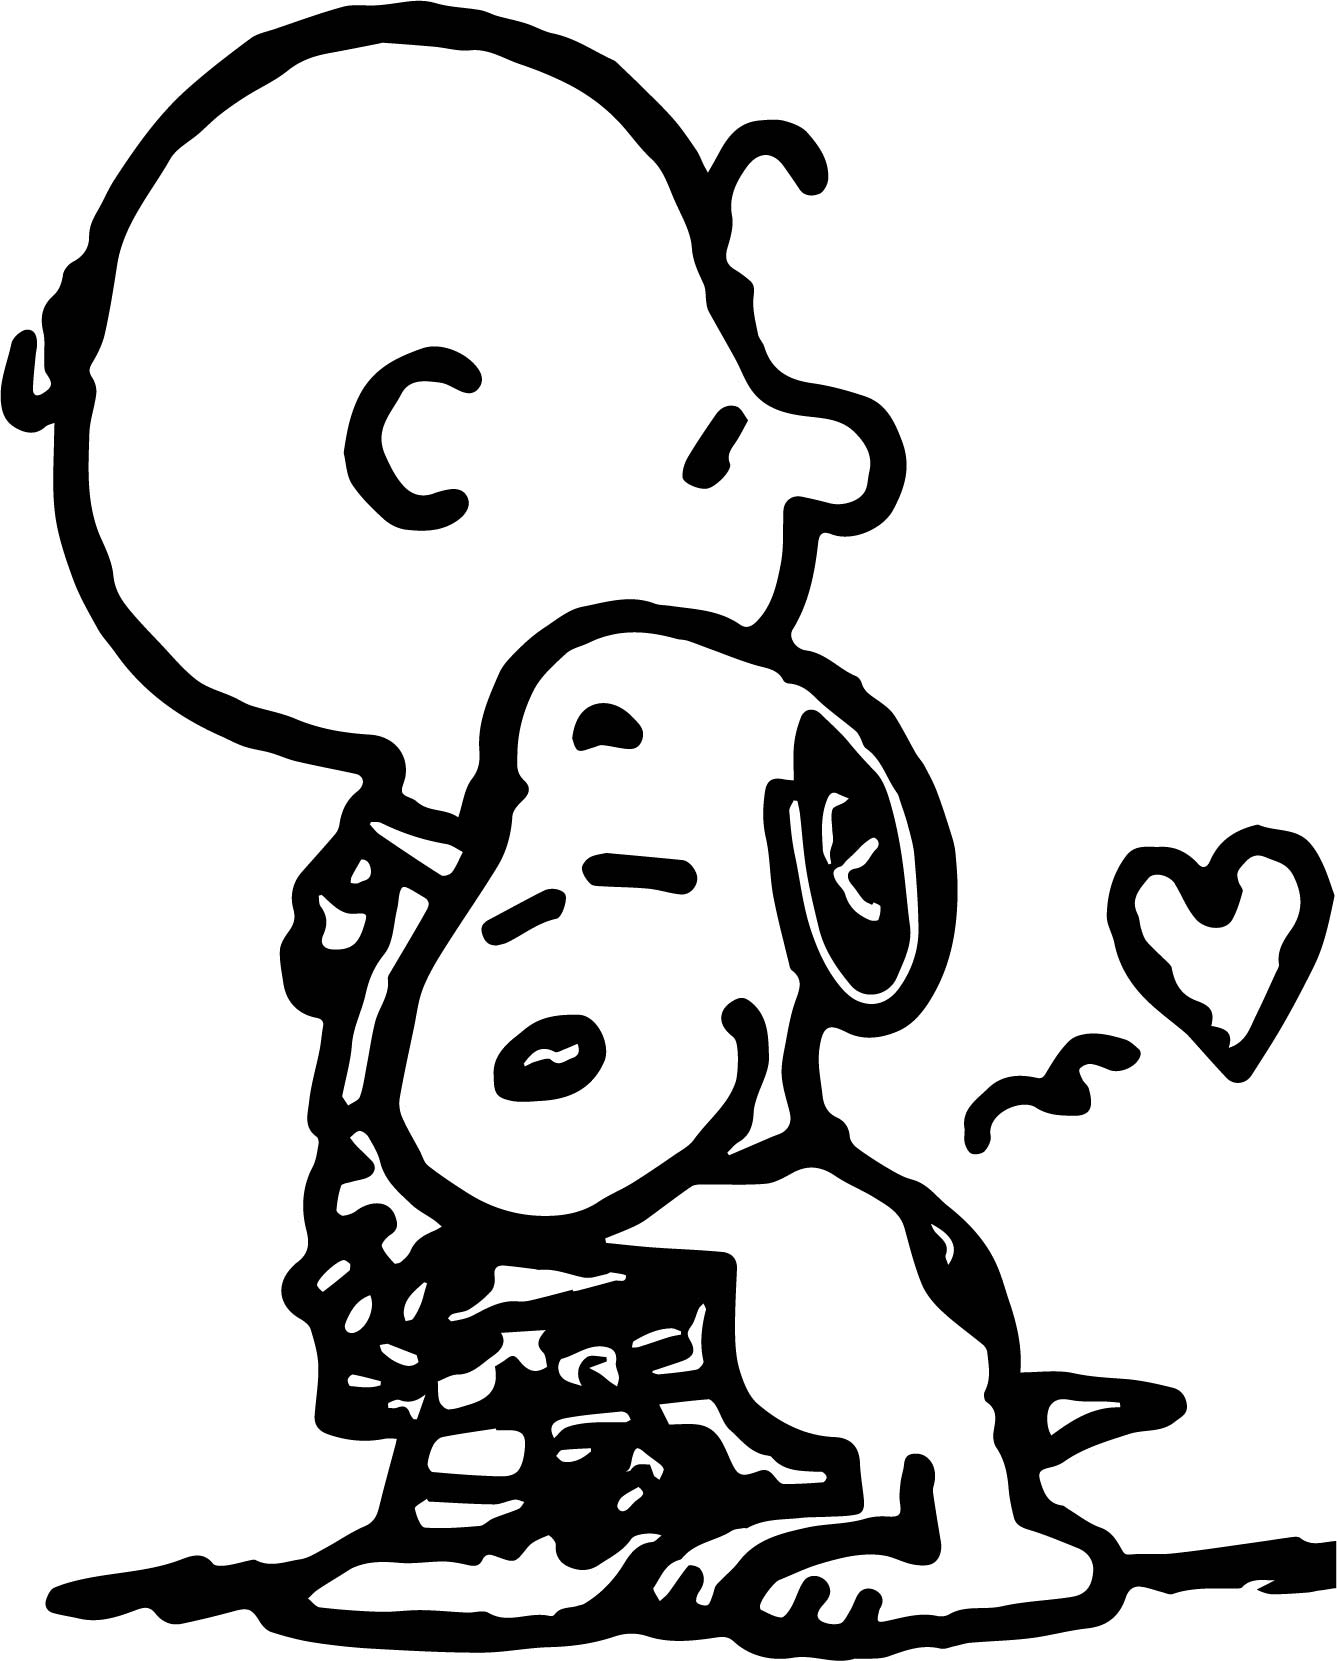 Charlie brown and snoopy coloring page for Snoopy coloring page